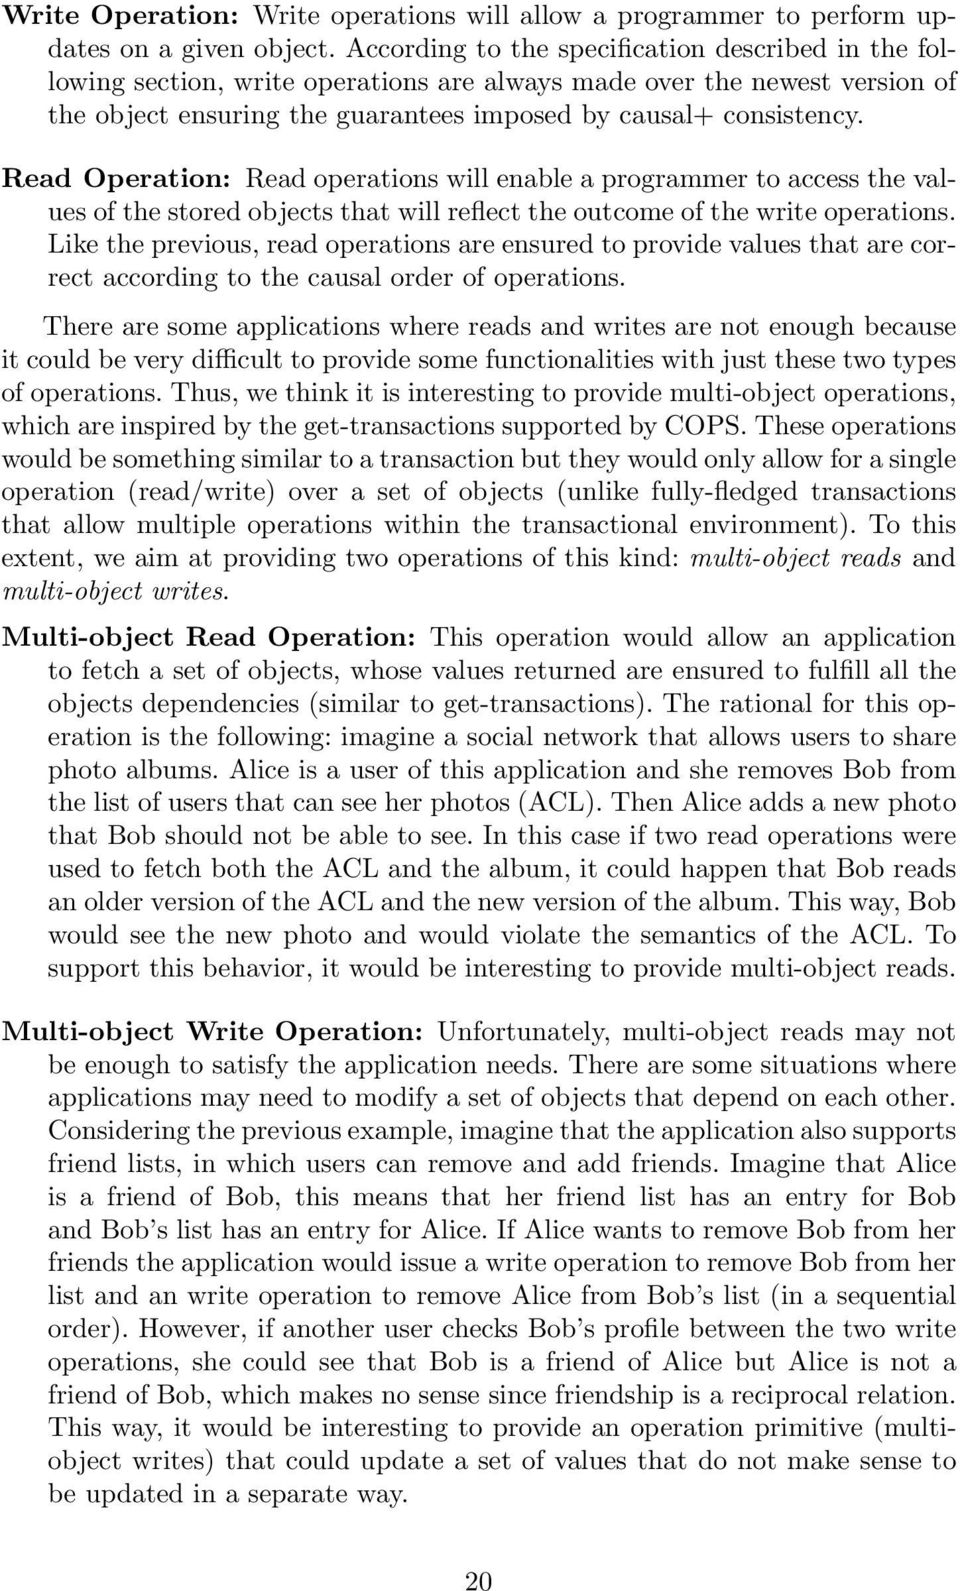 Read Operation: Read operations will enable a programmer to access the values of the stored objects that will reflect the outcome of the write operations.